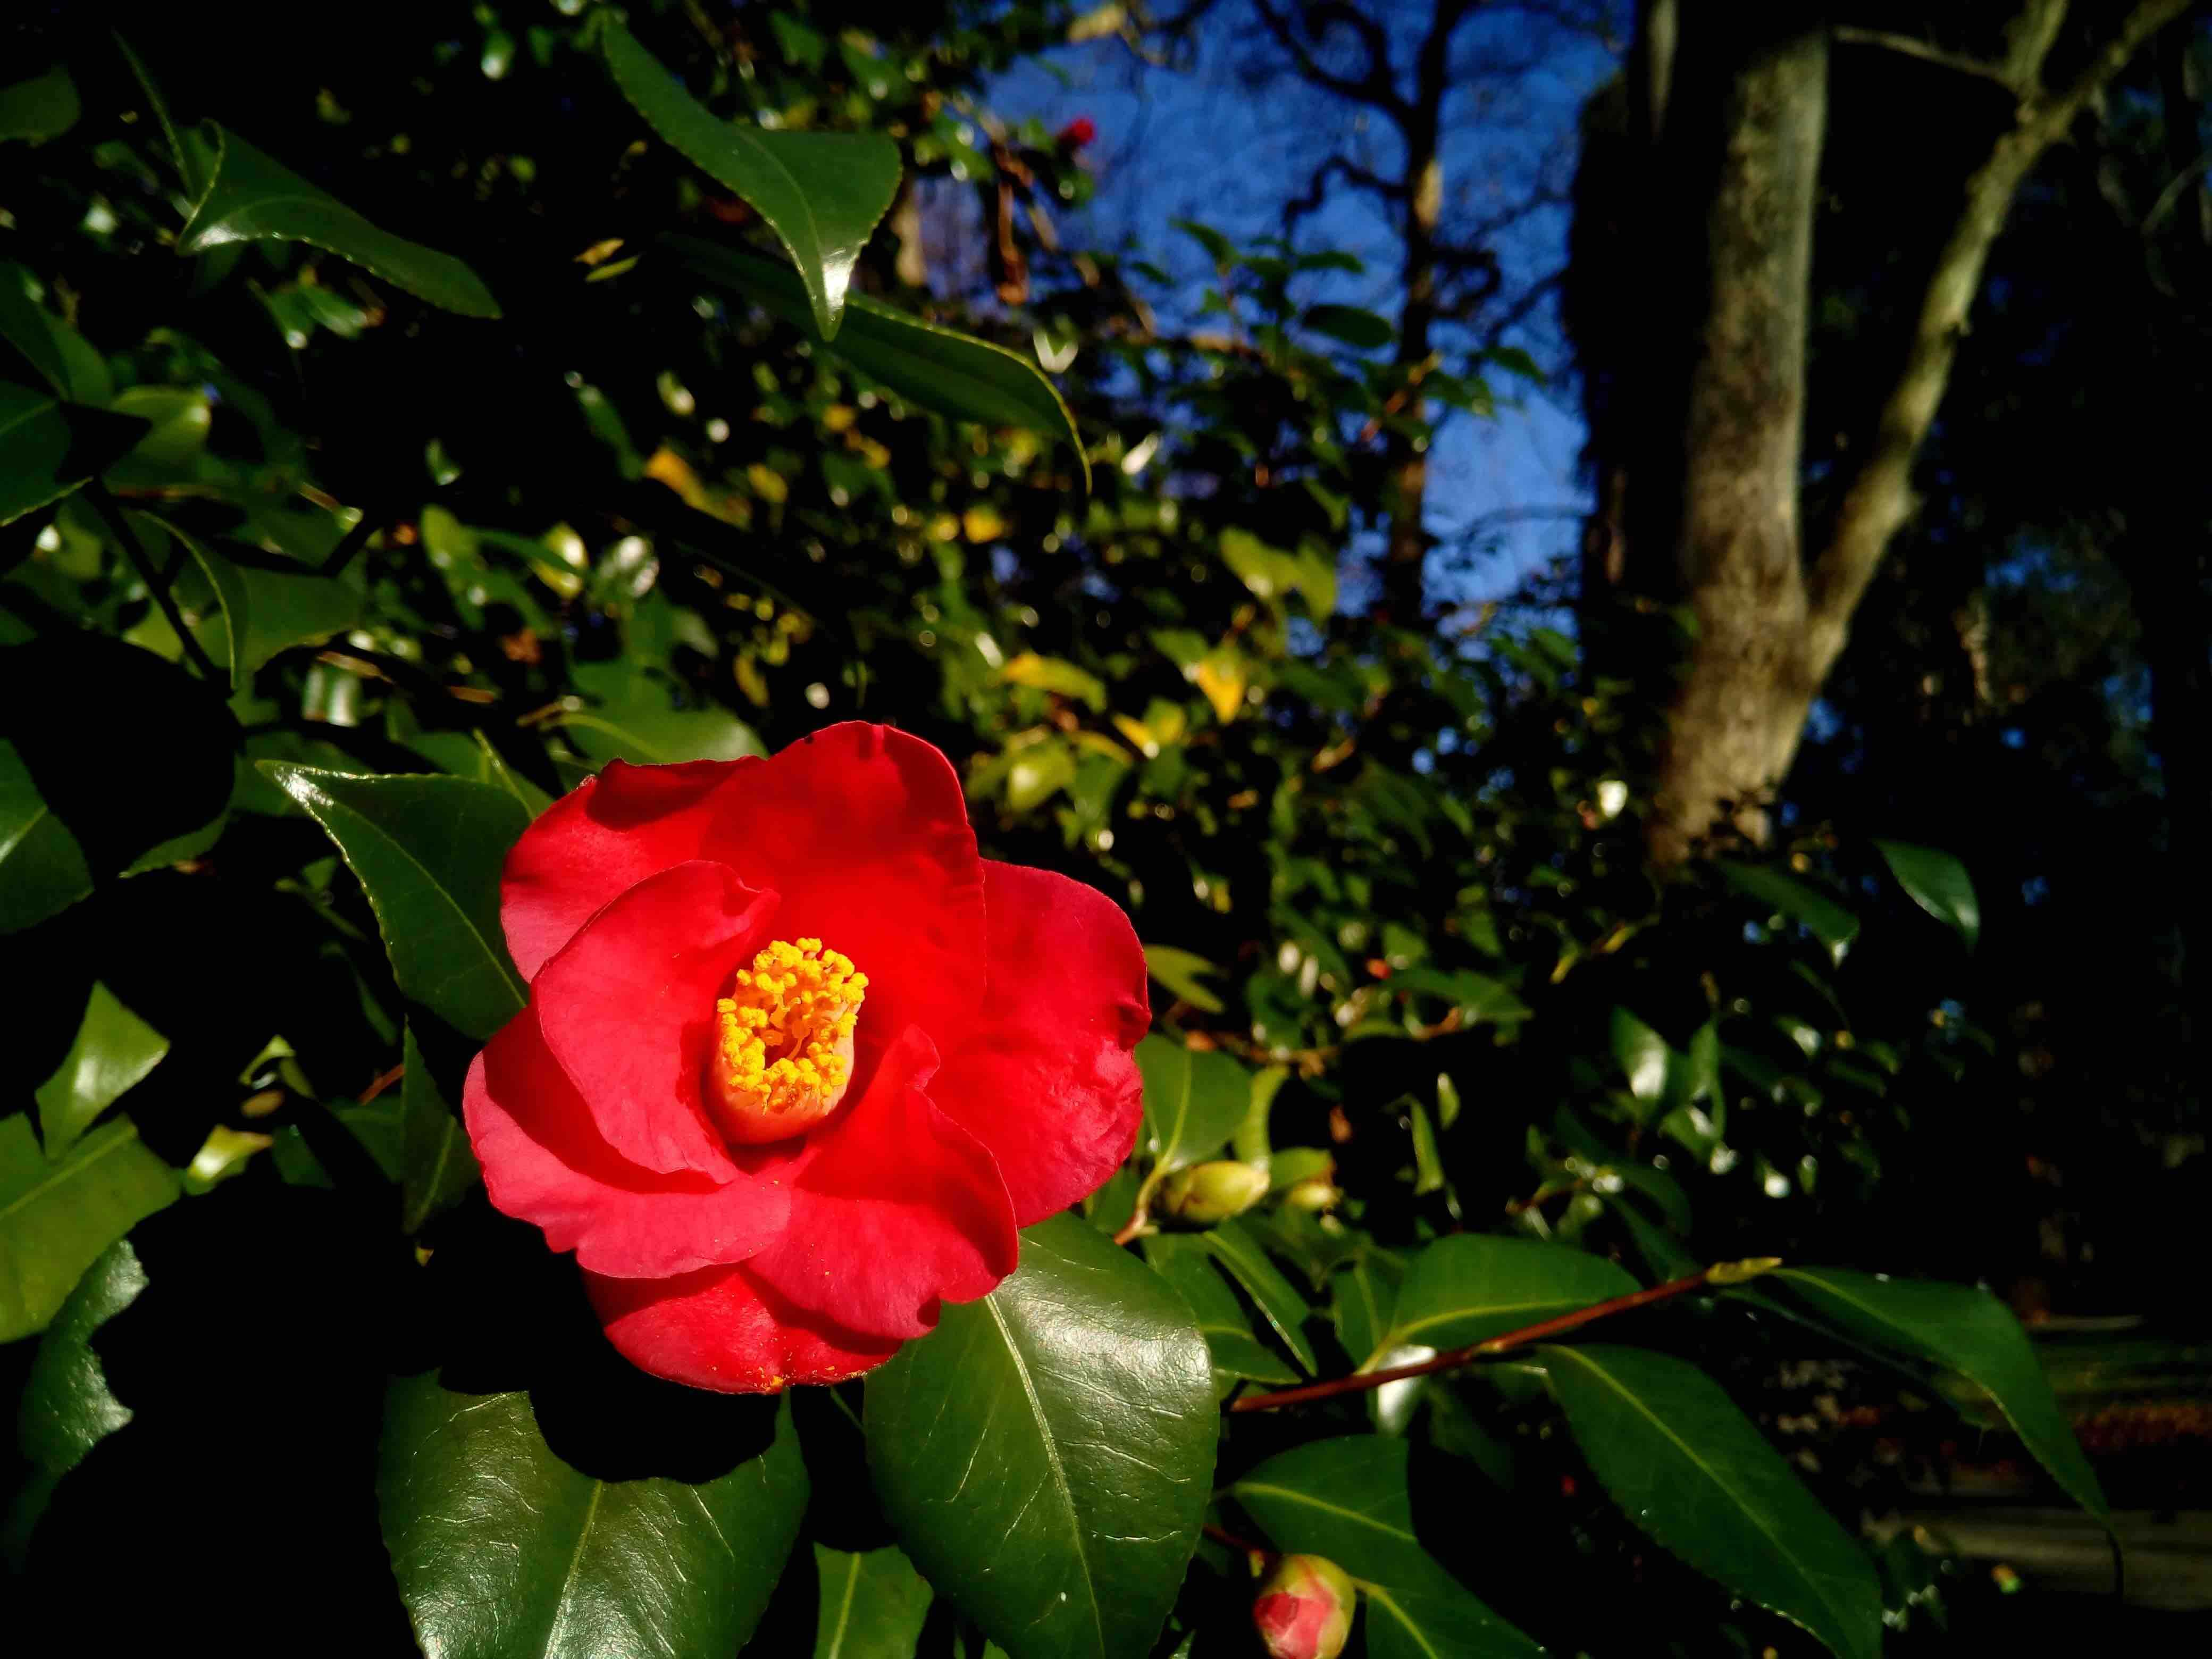 A red Camellia